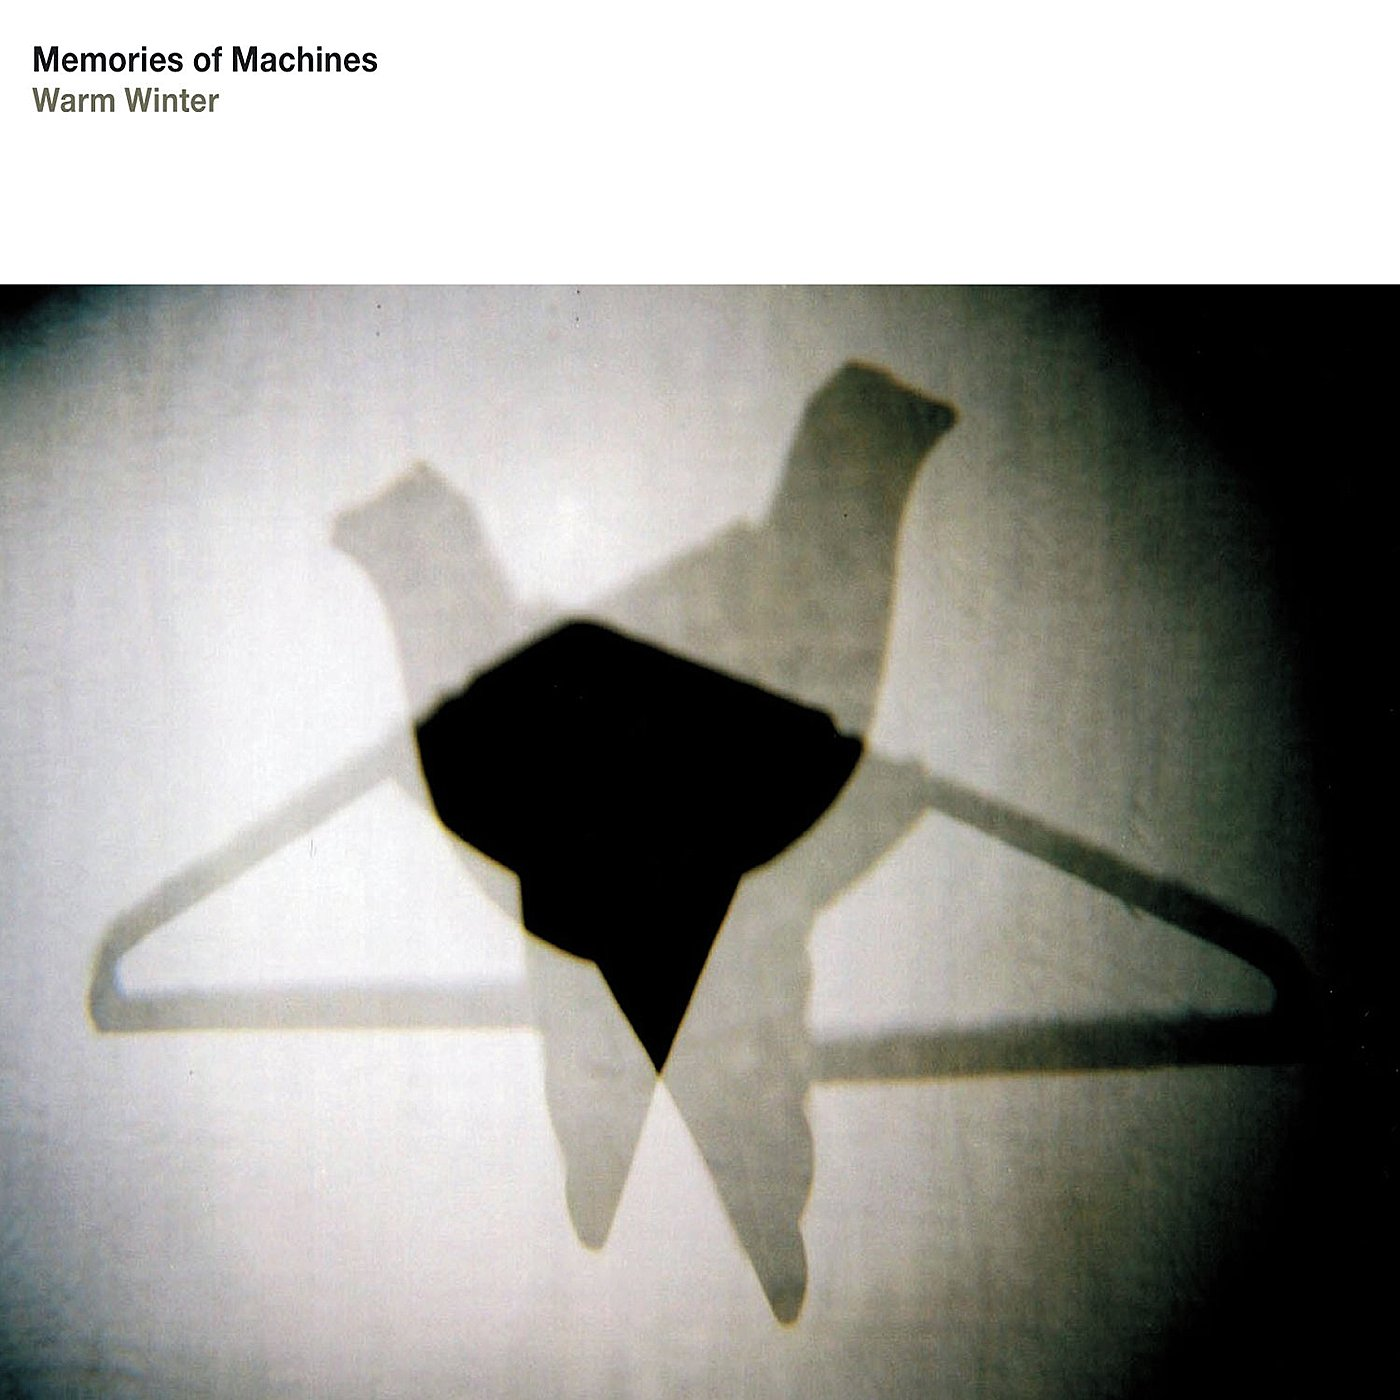 New Memories Of Machines